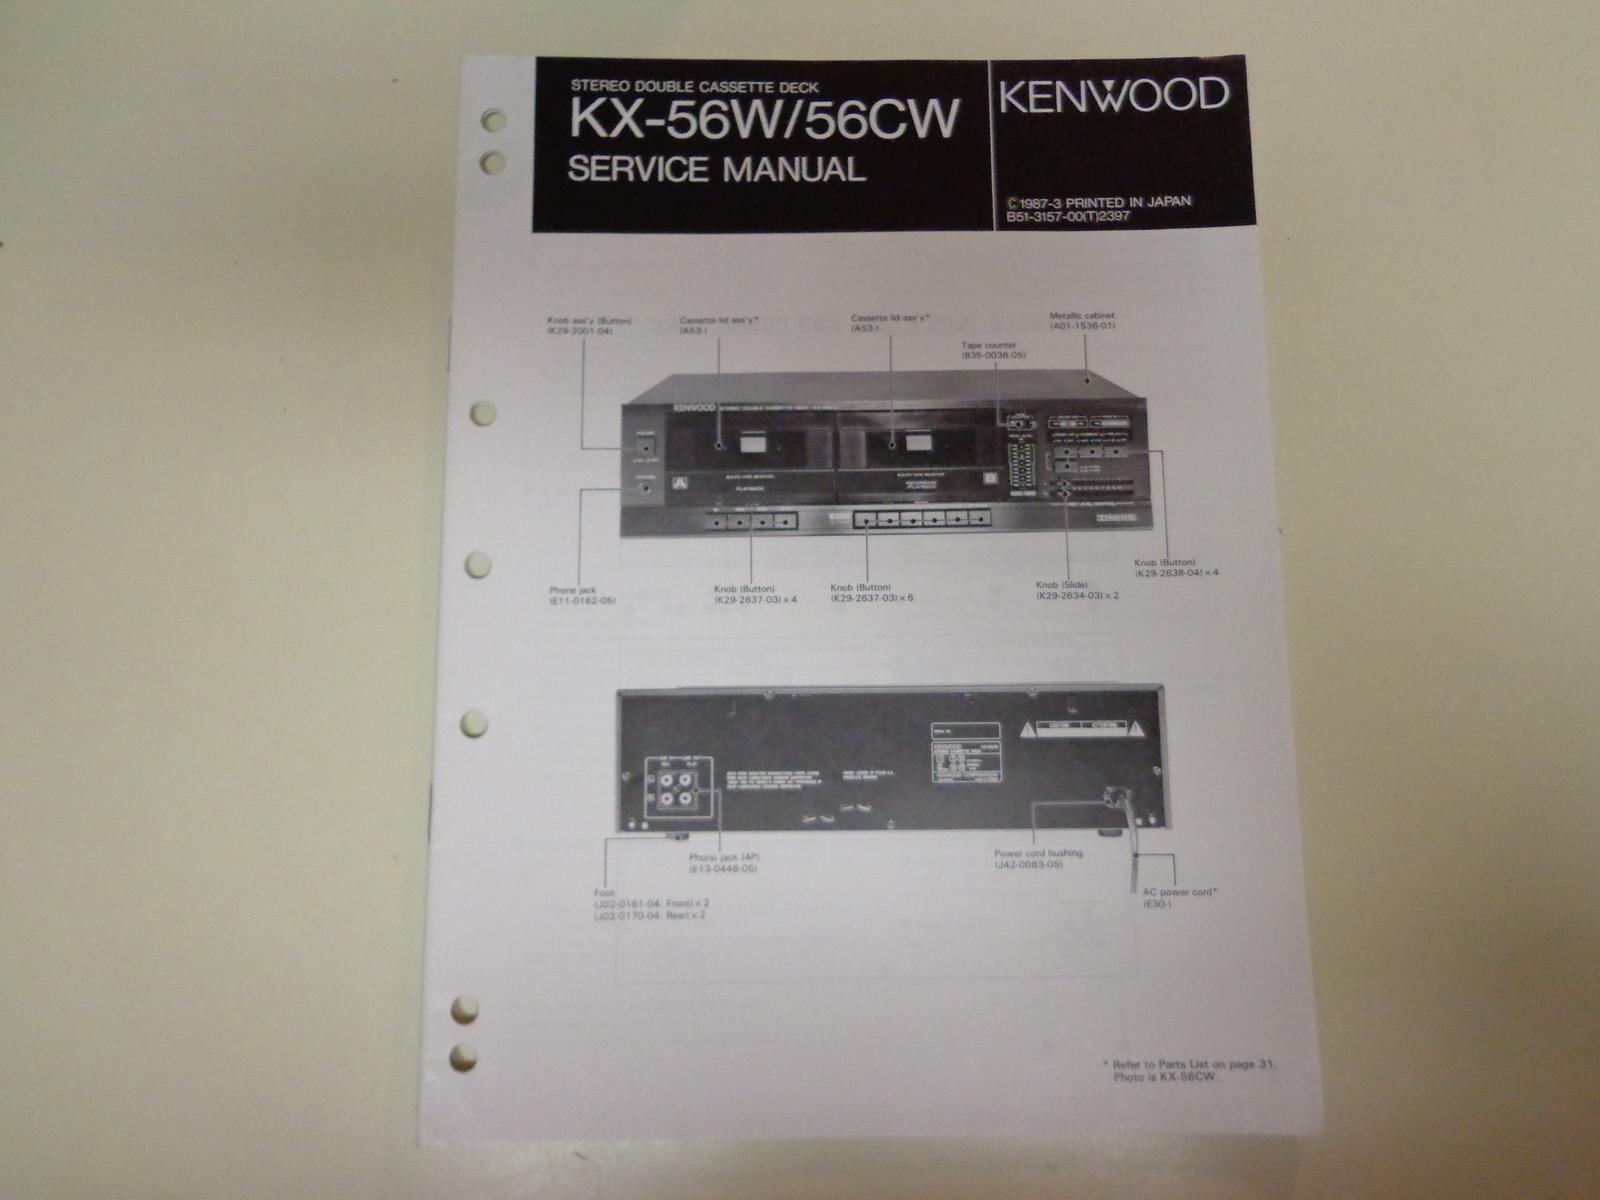 kenwood kx 56w 56cw stereo double cassette deck factory service rh abebooks co uk kenwood cassette deck manual Kenwood Manuals DNX9960